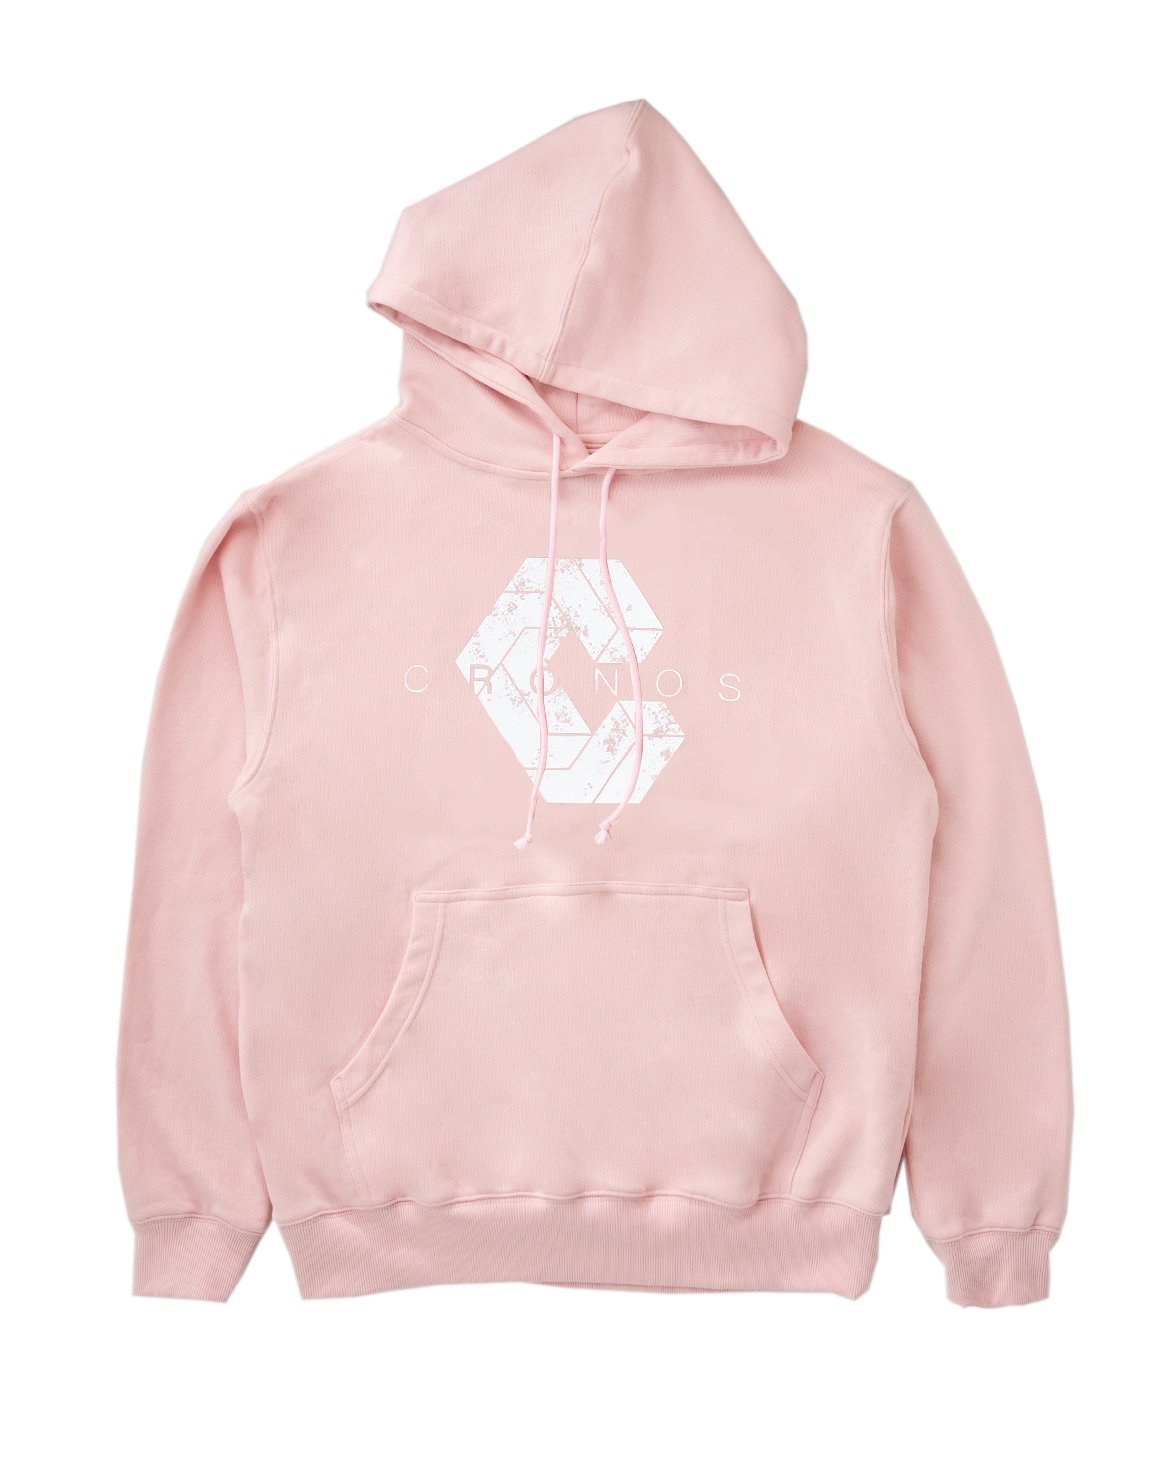 <img class='new_mark_img1' src='https://img.shop-pro.jp/img/new/icons1.gif' style='border:none;display:inline;margin:0px;padding:0px;width:auto;' />NEW LOGO PULL OVER PARKA 【PINK】